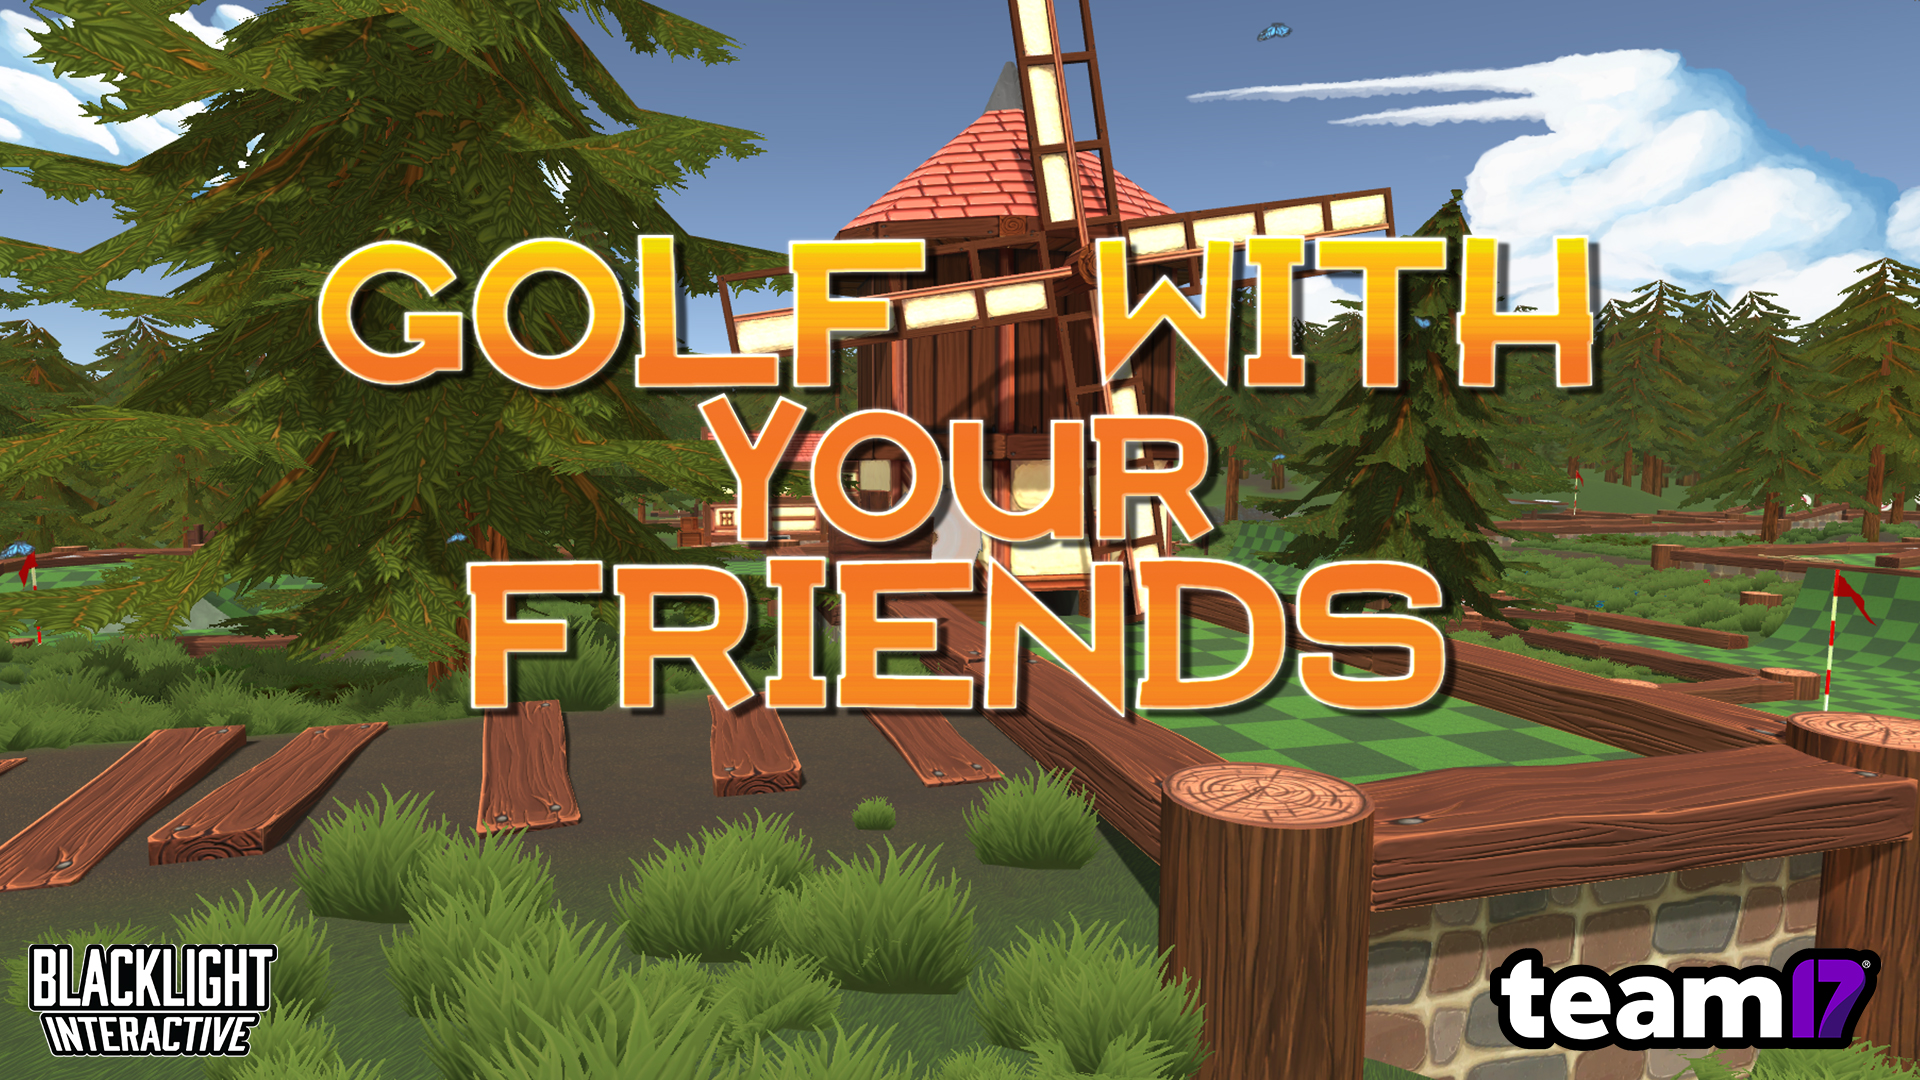 Team17 joins Blacklight Interactive on the course for Golf With Your Friends